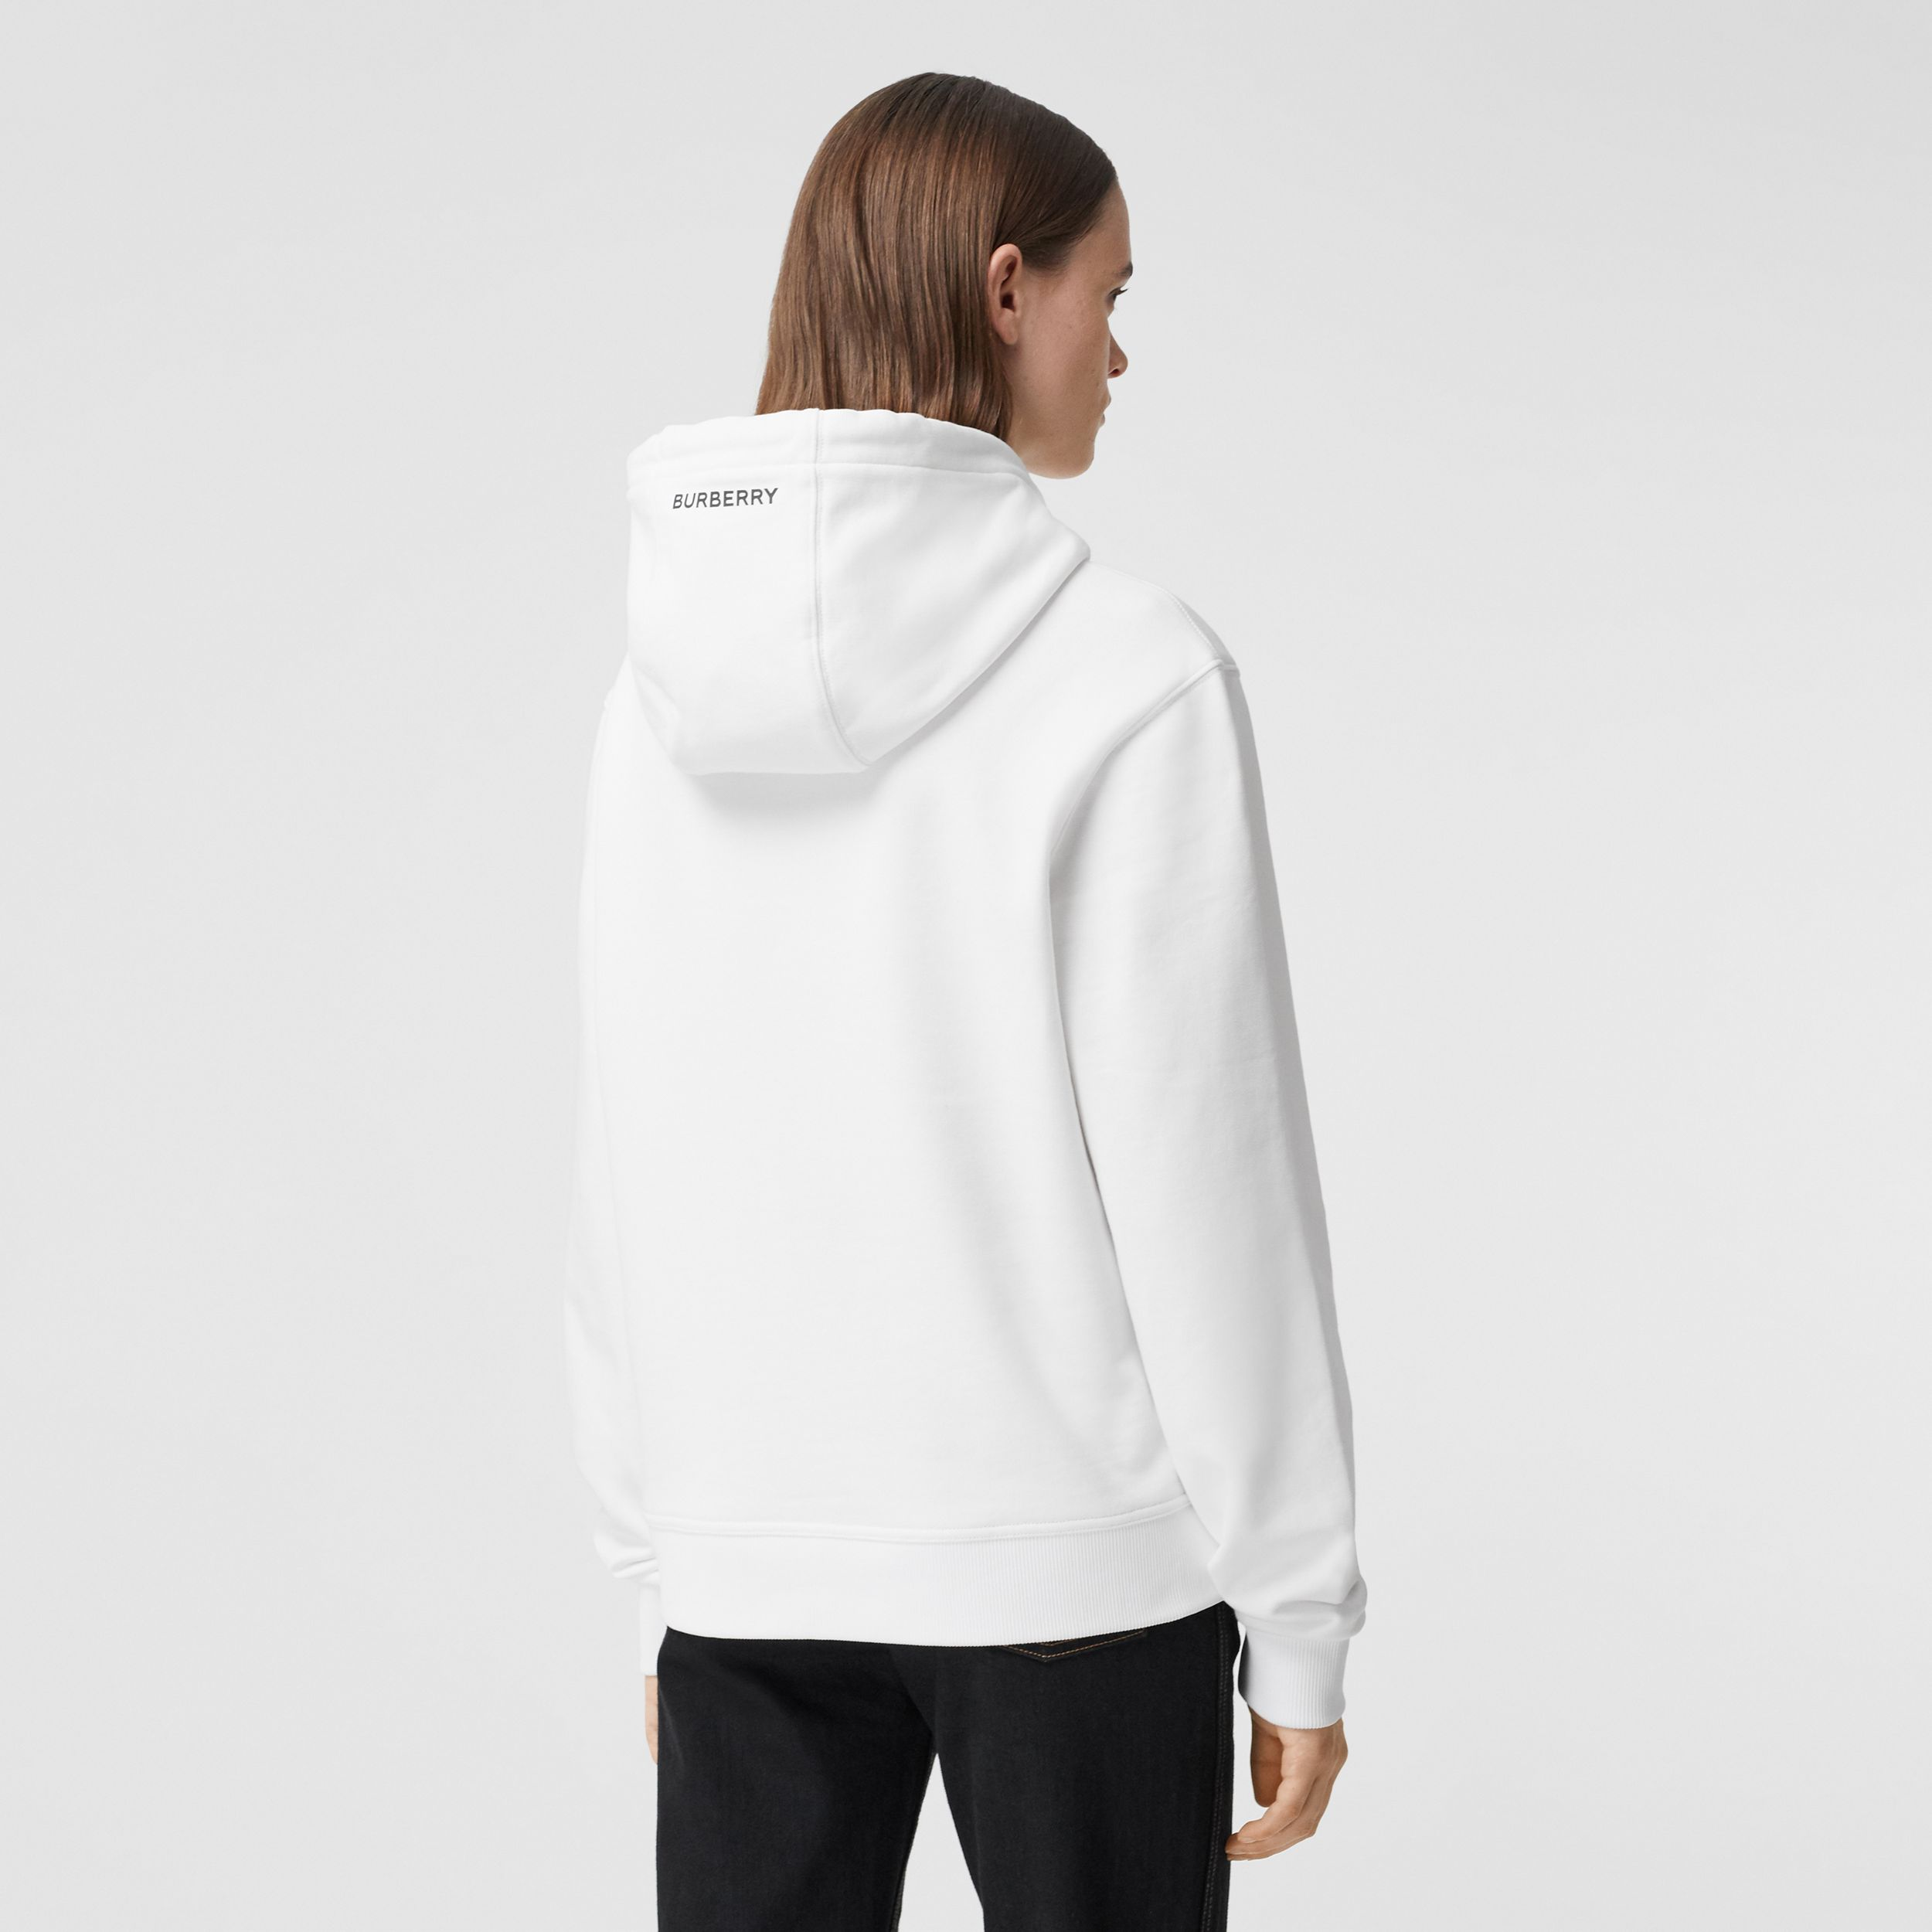 Slogan Print Cotton Oversized Hoodie in White - Women | Burberry - 3